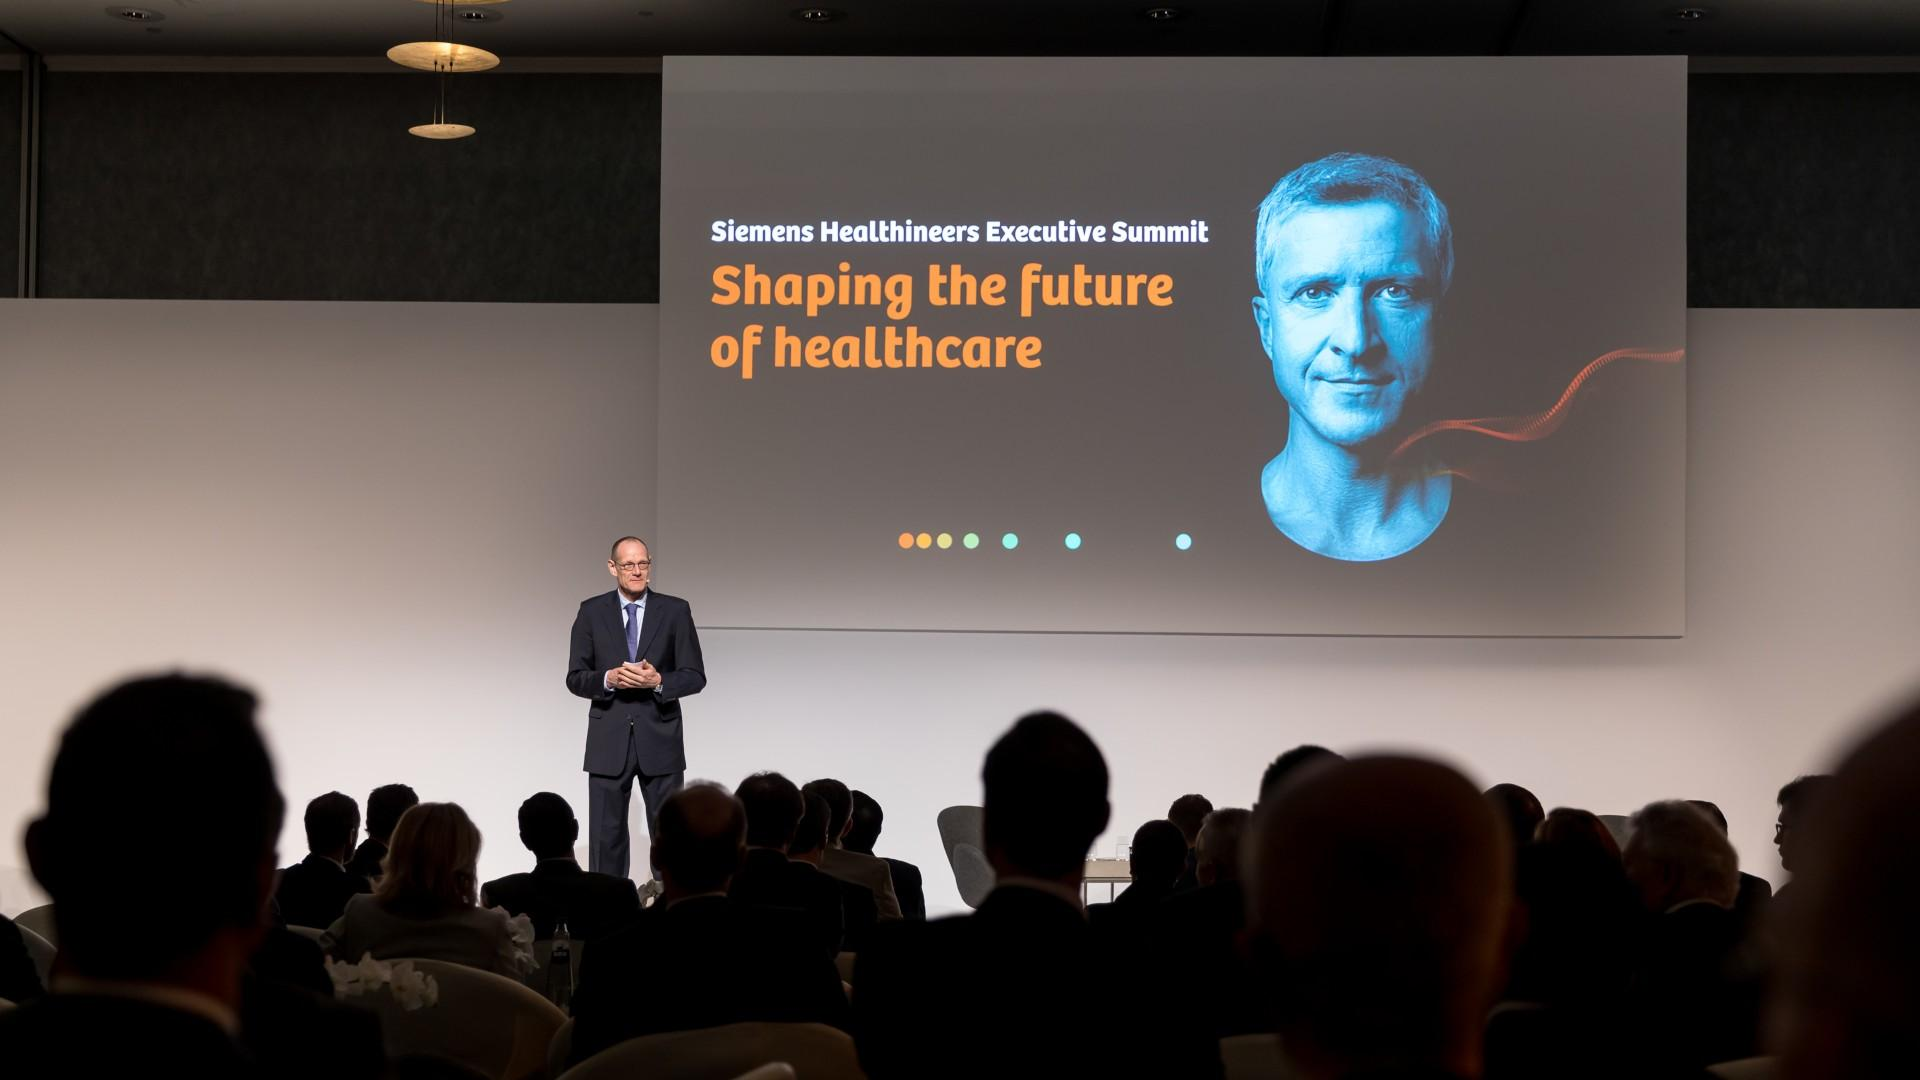 Bernd Montag, CEO of Siemens Healthineers, giving the opening remarks at the Executive Summit 2019.